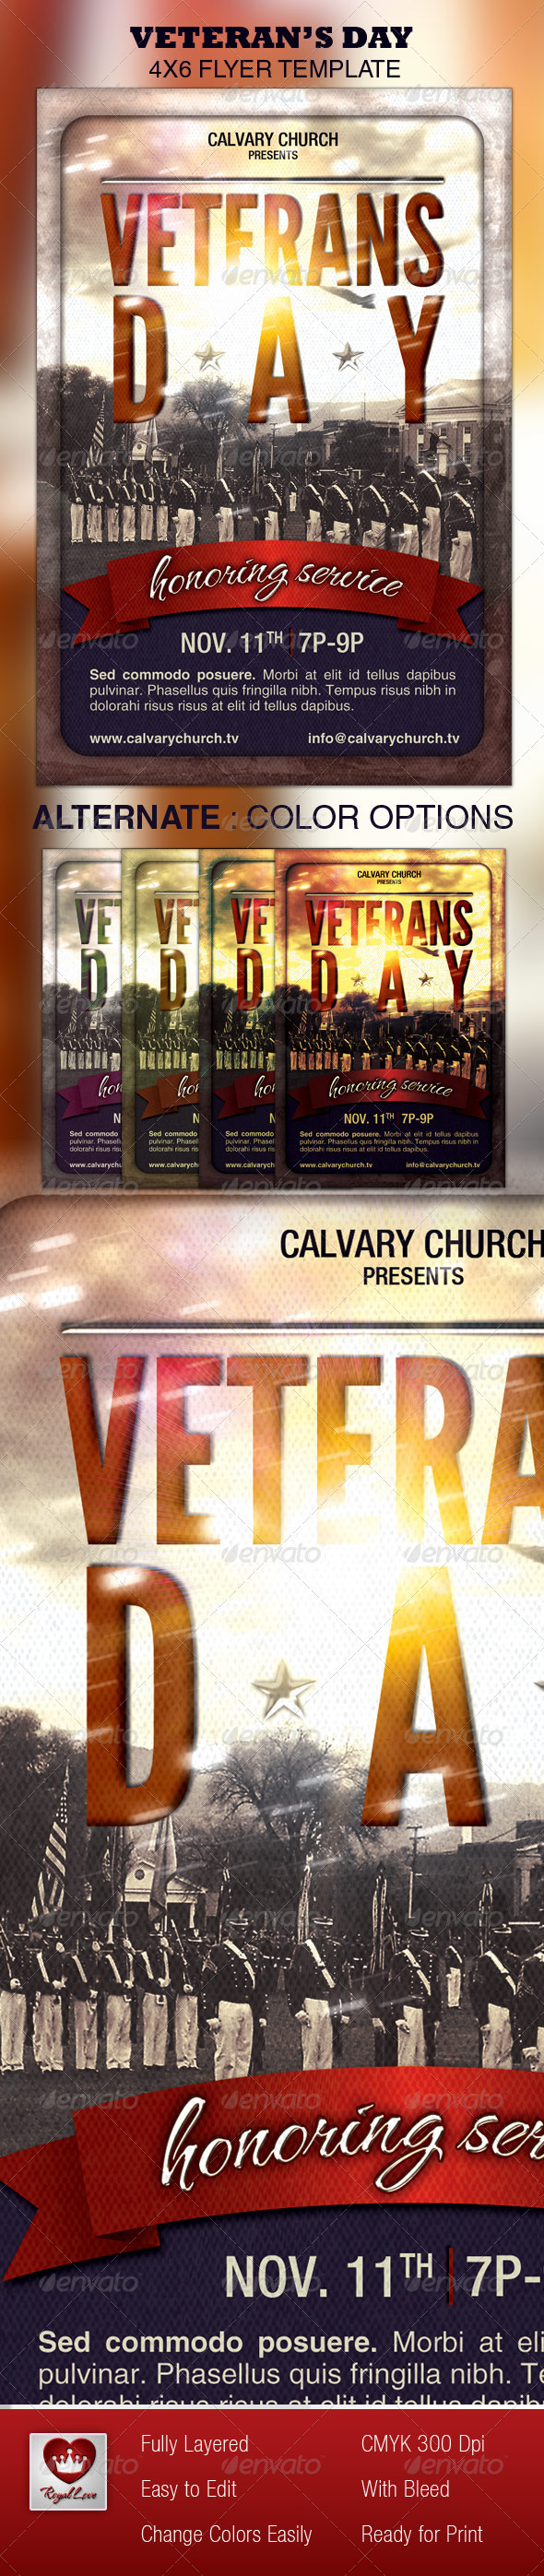 Veterans Day Church Flyer - Church Flyers